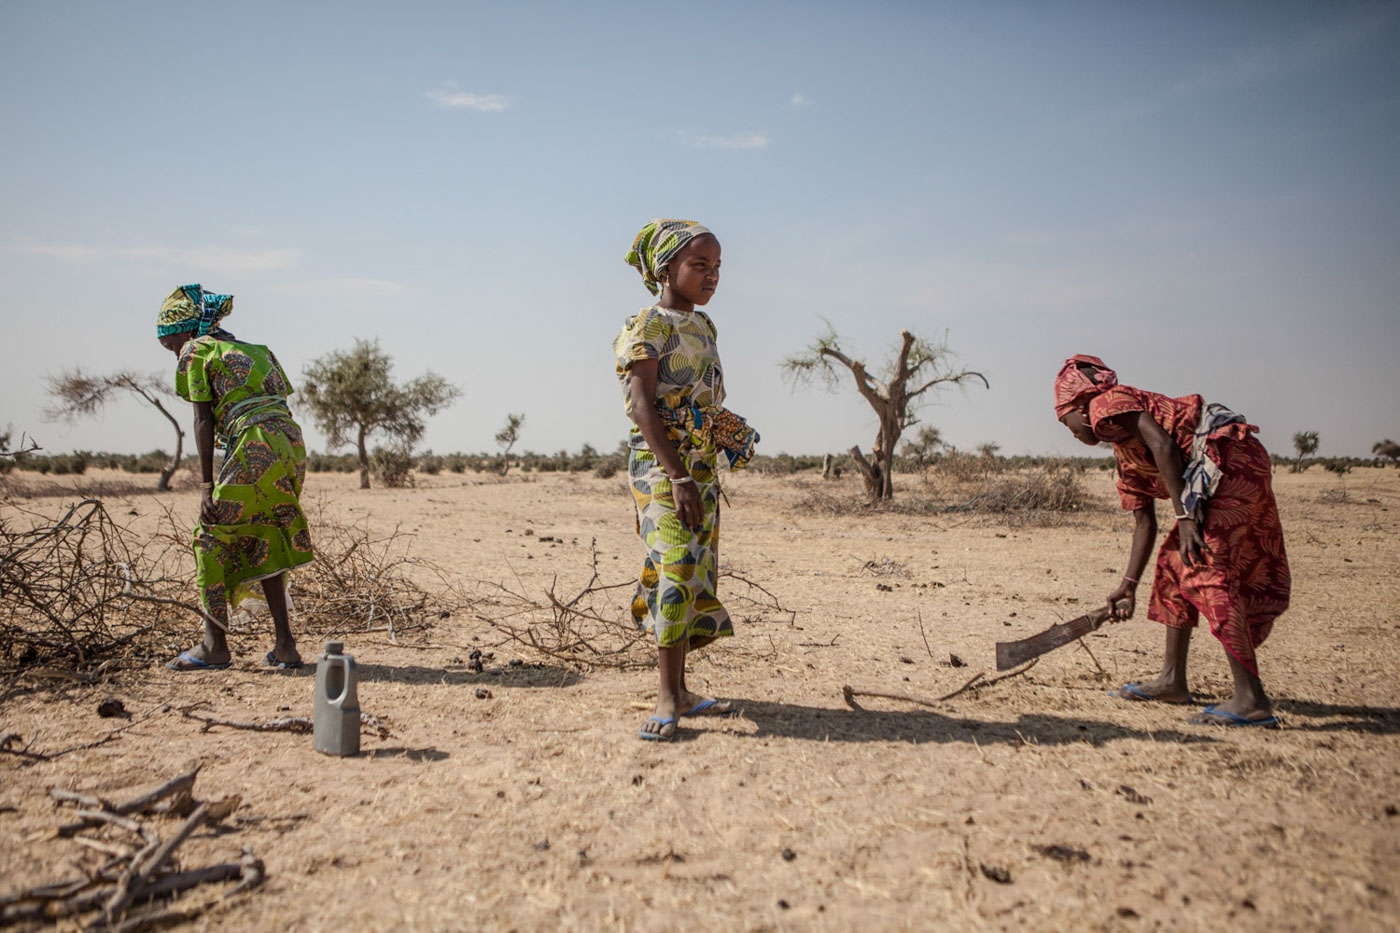 A group of girls  originally from Nigeria break down remaining branches from trees cut by other refugees outside of Guam Guam camp in Diffa, Niger.Garin Wanzam Camp is the largest camp in the region hosting almost 23,000 displaced people. Many cut down trees in the area in order to help reduce the cost of firewood which can cost up to 30-40 percent of a family's monthly budget.